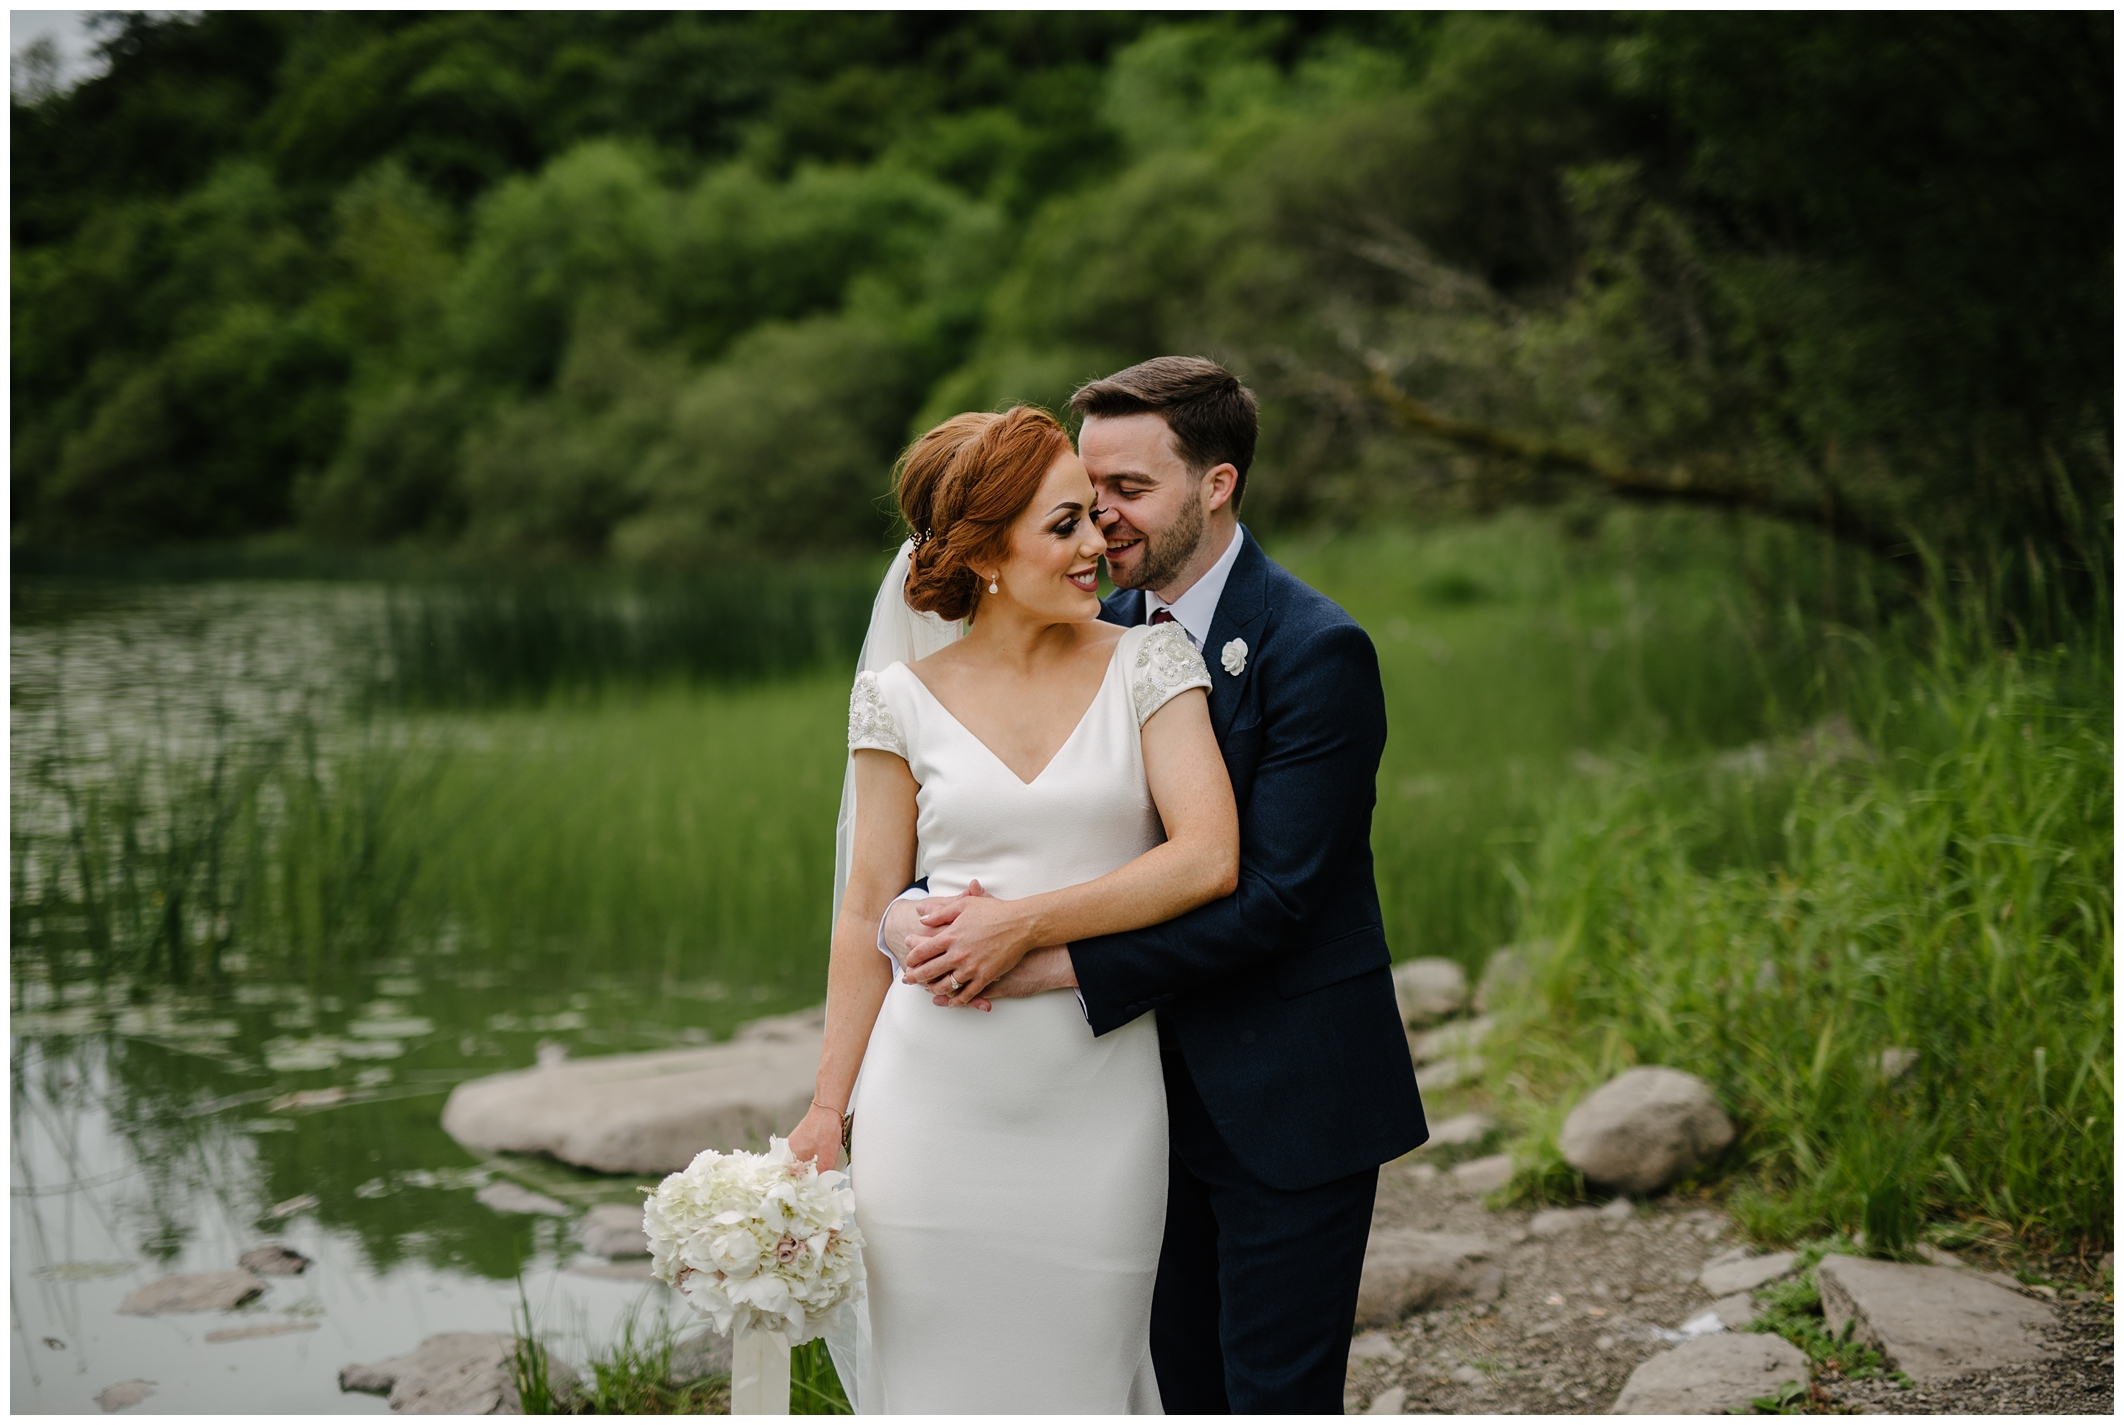 sinead_emmet_farnham_estate_wedding_jude_browne_photography_0126.jpg